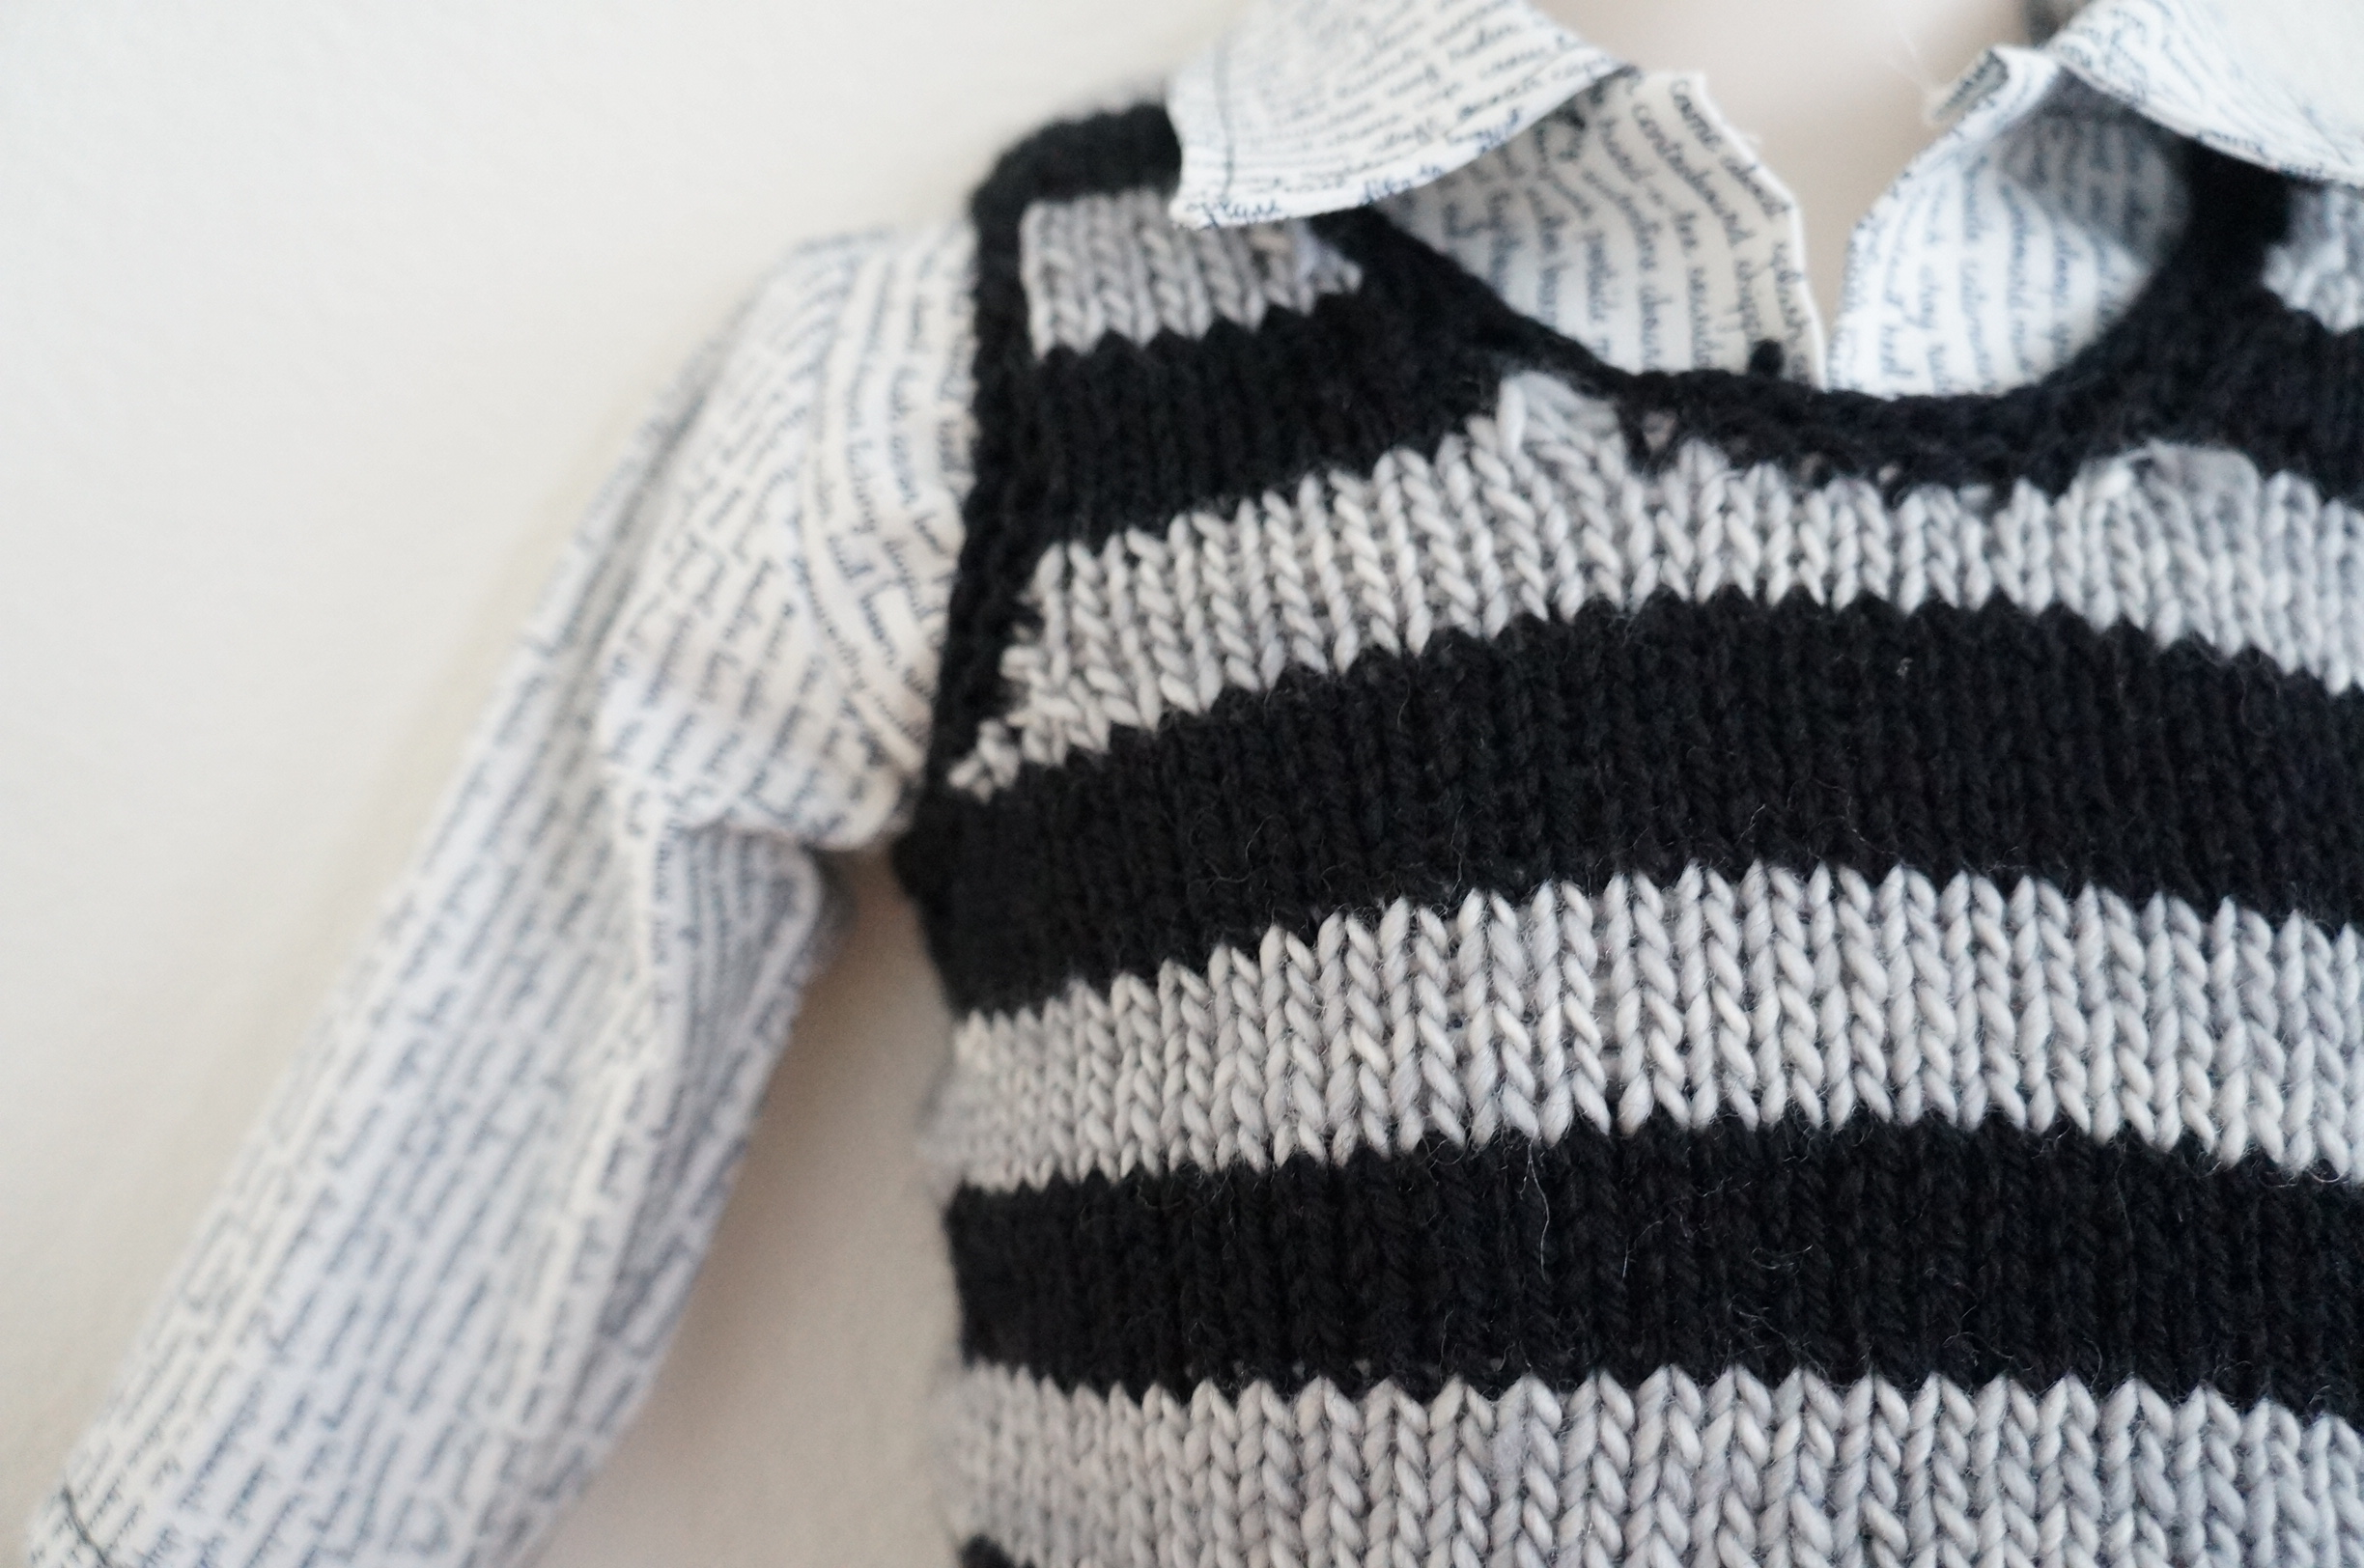 Dior Homme Inspired Baby Outfit for Logan | Handmade Fashion at Candy & Bagel